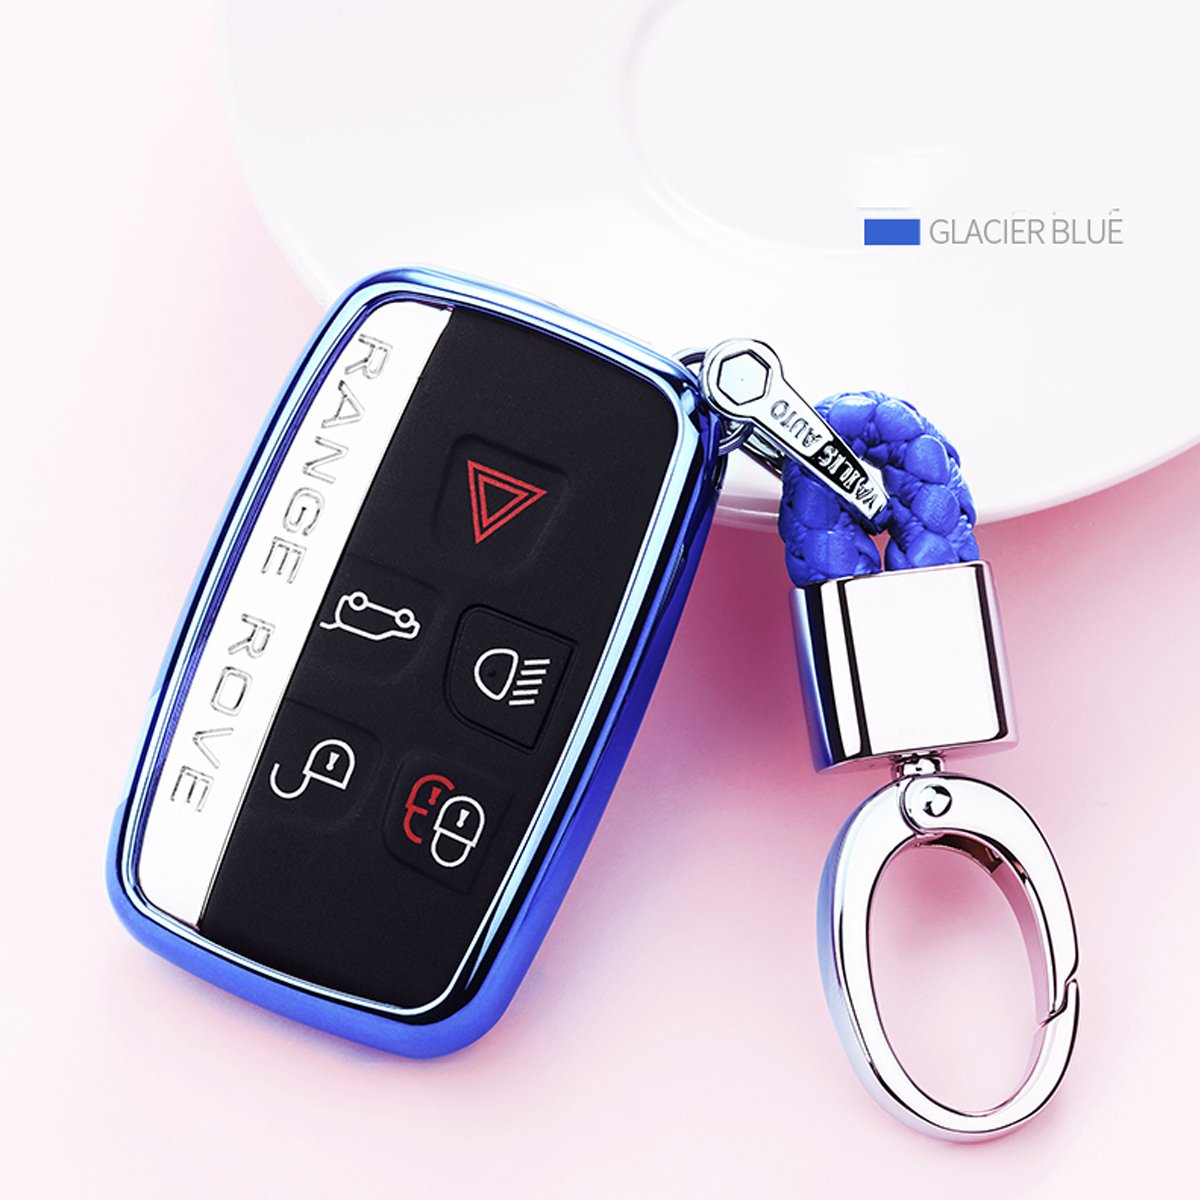 MODIPIM Keyless Entry Remote Cover Soft TPU Key Fob Case with Diamond Tassel Keychain for Land Rover Defender Discovery Sport LR4 Range Rover Sport 5-Buttons Smart Key Color Silver